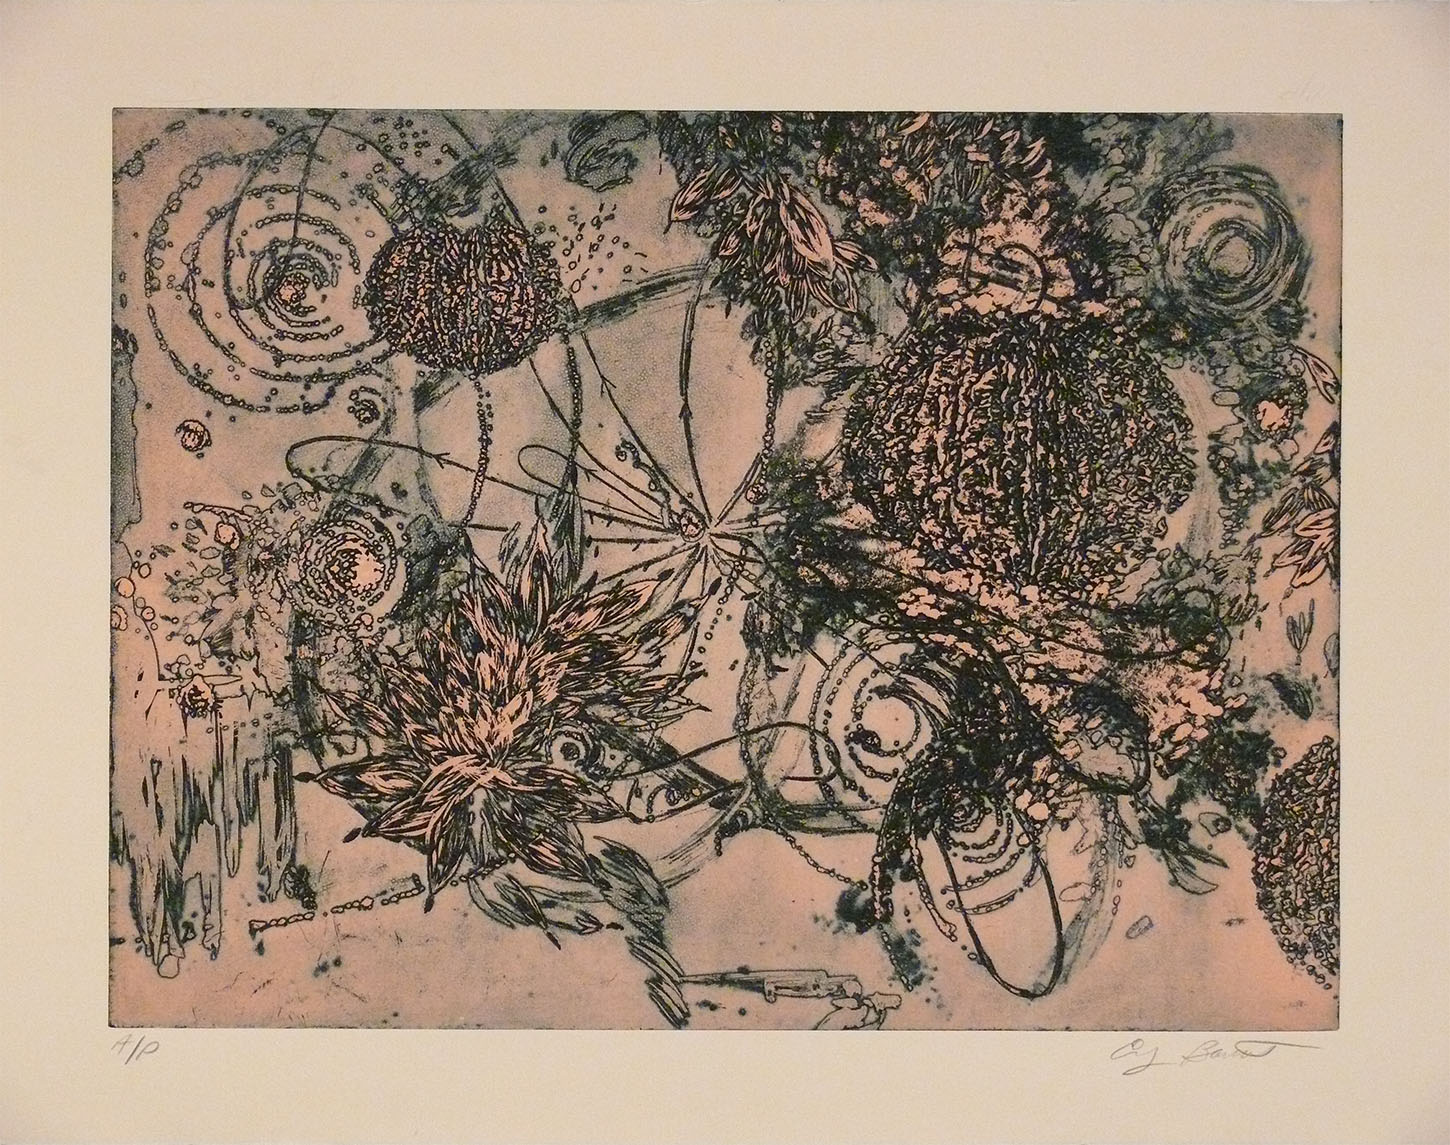 Microcosms, Pink, 2005, Viscosity Etching, 22 x 30